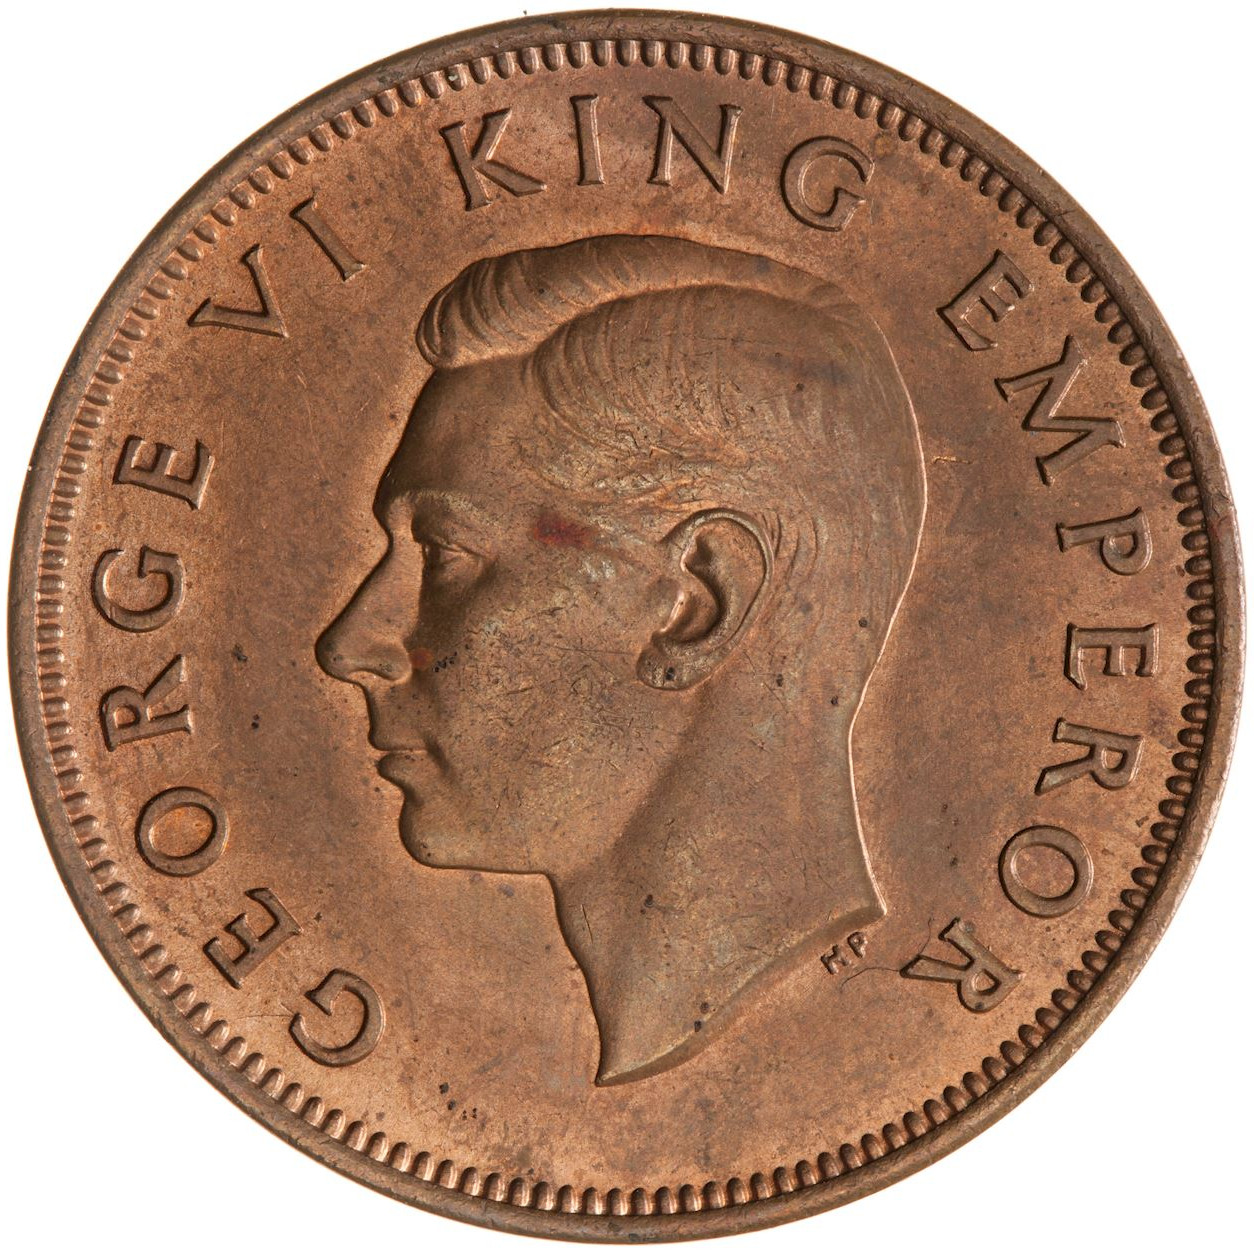 Halfpenny 1940: Photo Coin - 1/2 Penny, New Zealand, 1940